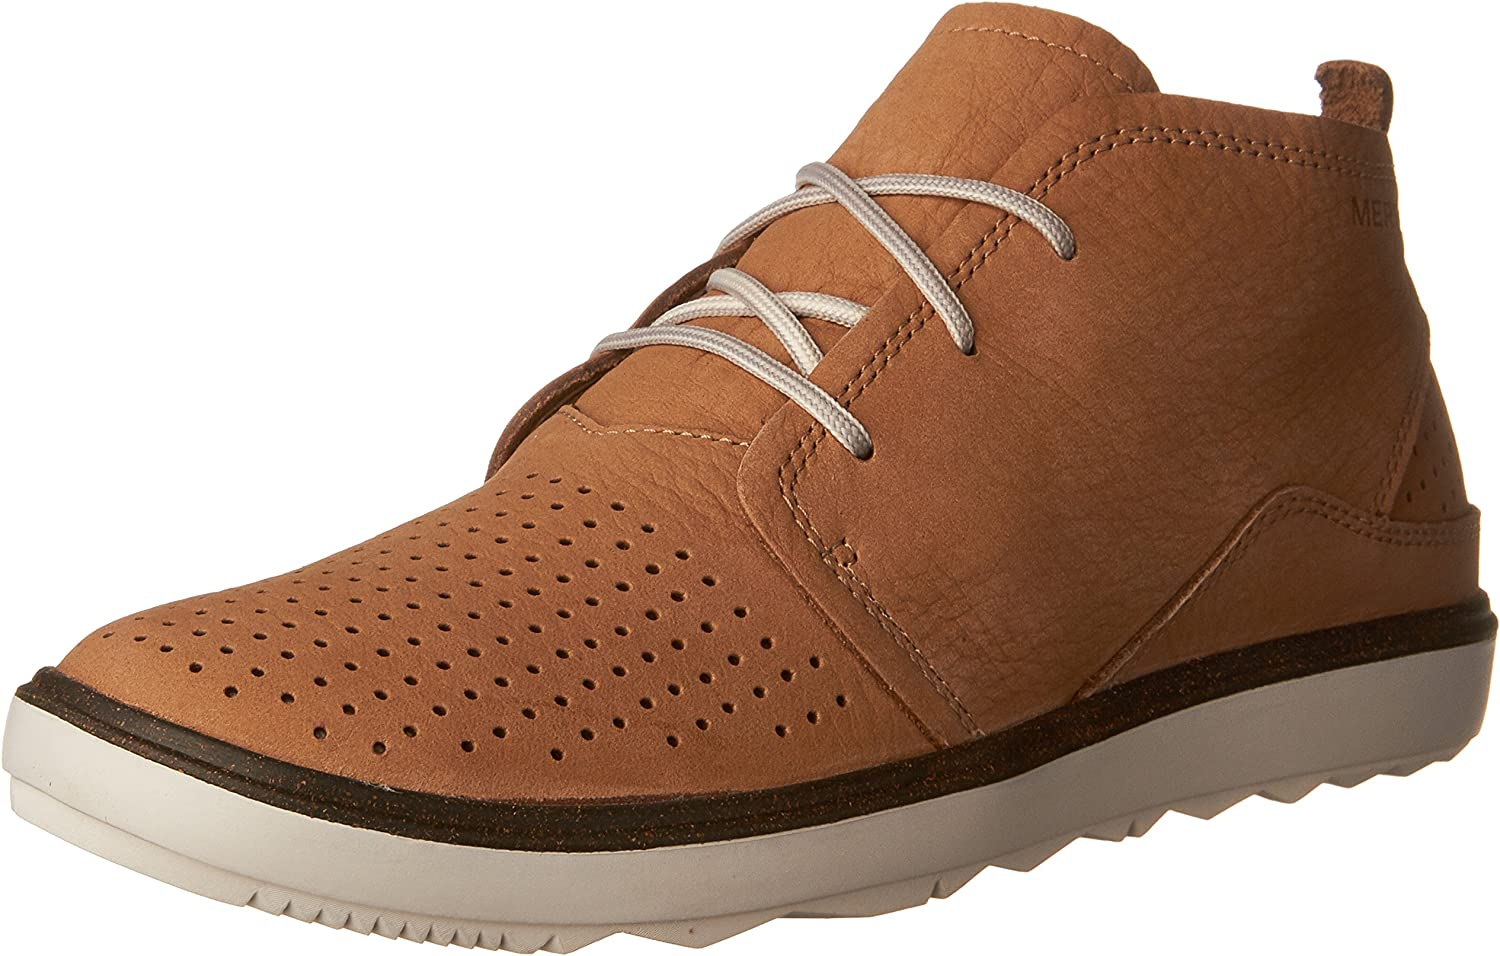 Merrell Around Town Chukka Air shoes